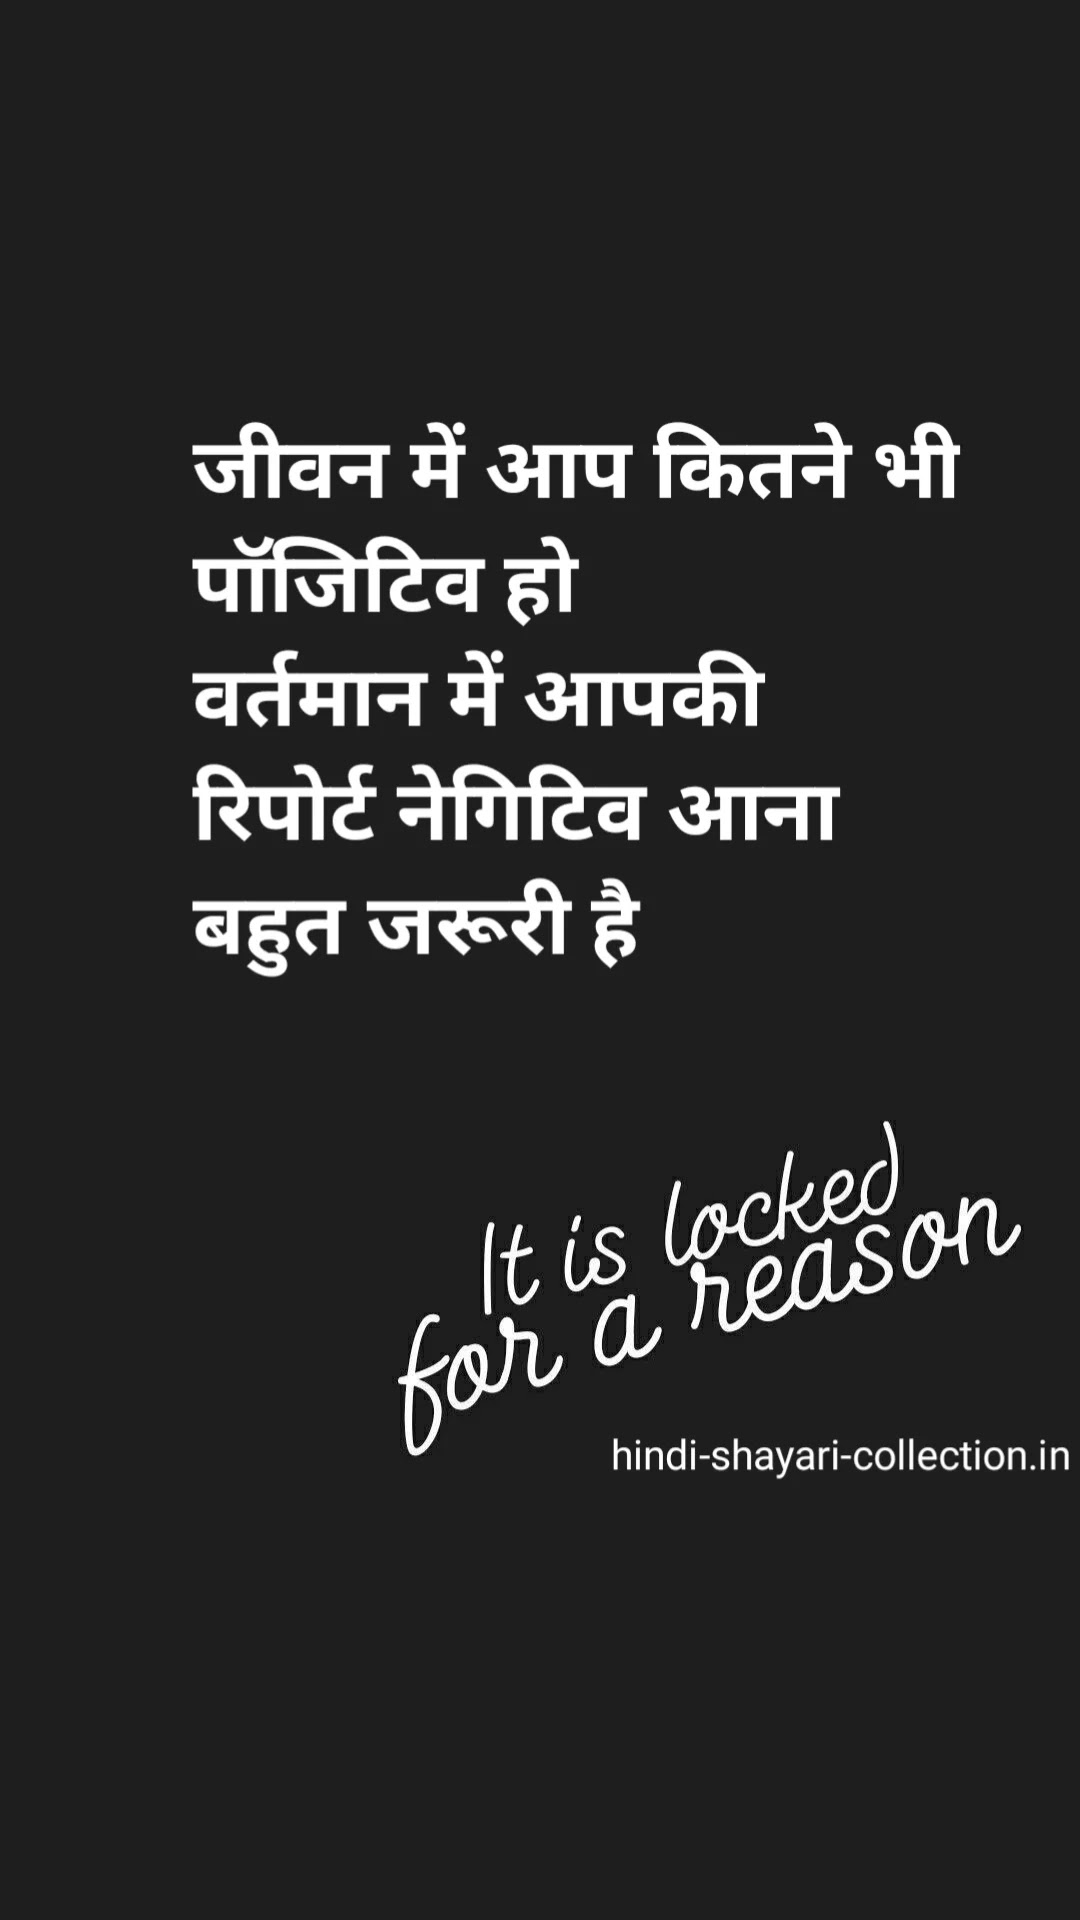 lockdown Shayari ,Corona Quotes In Hindi , lockdown shayari dp, corona Quotes,